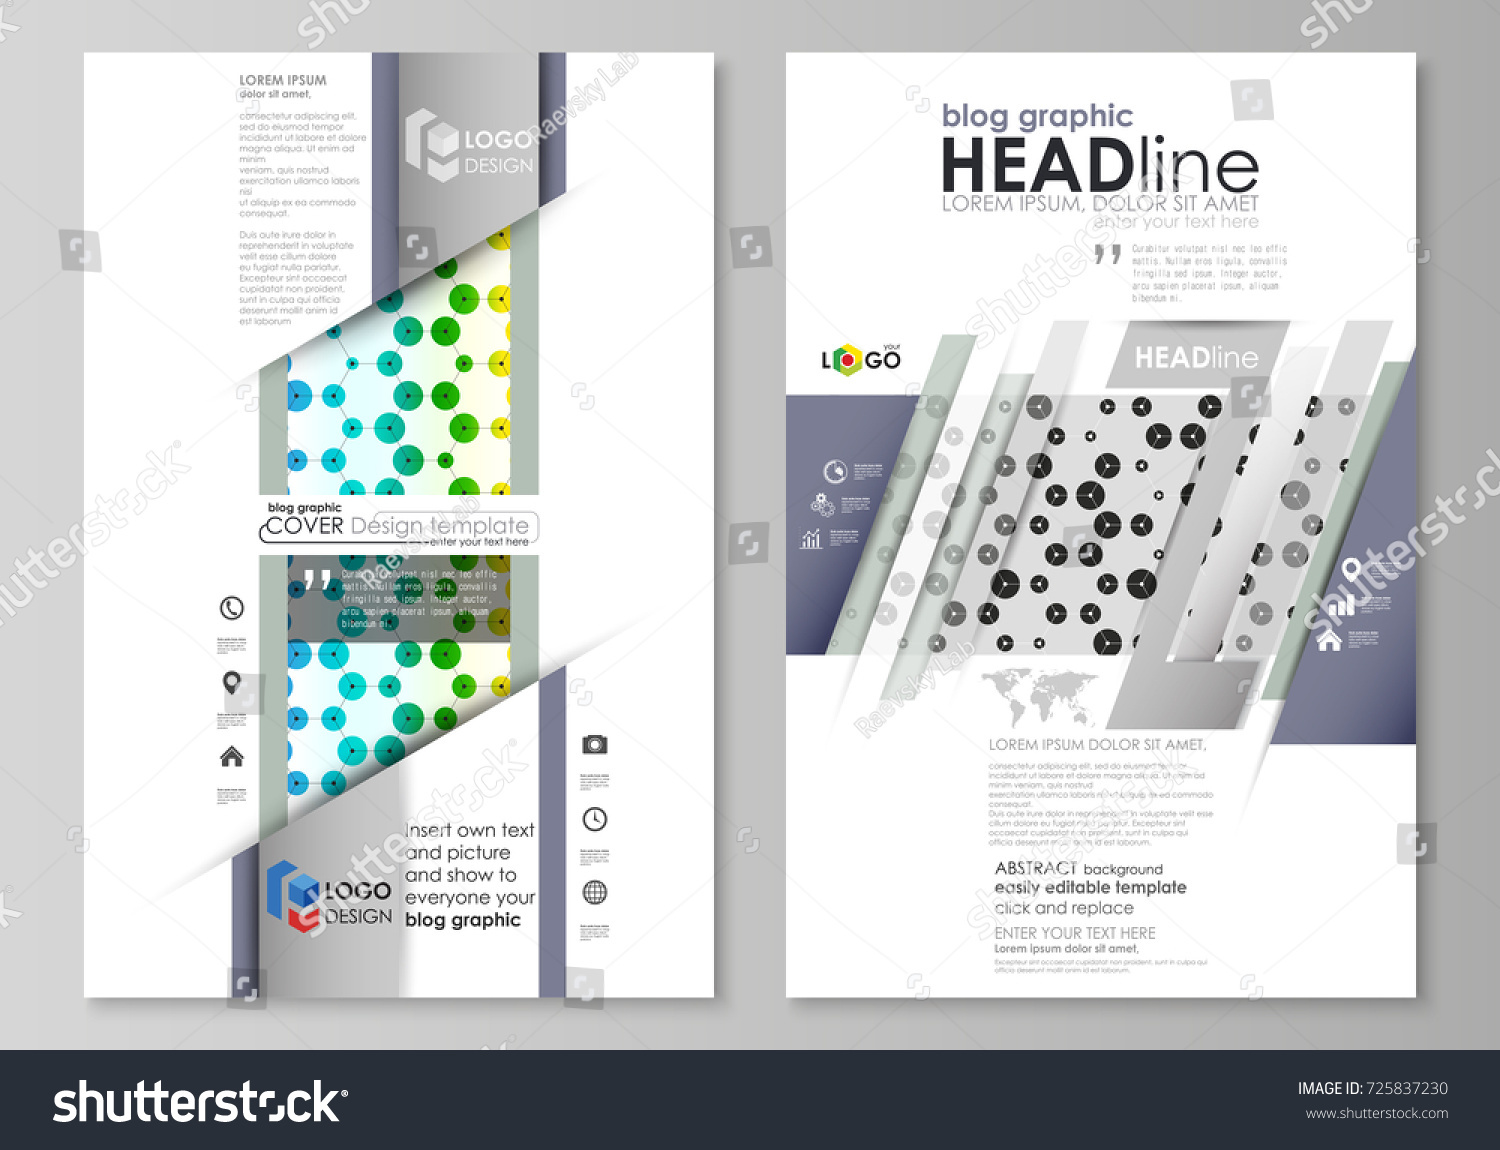 Blog Graphic Business Templates Page Website Stock Vector 725837230 ...